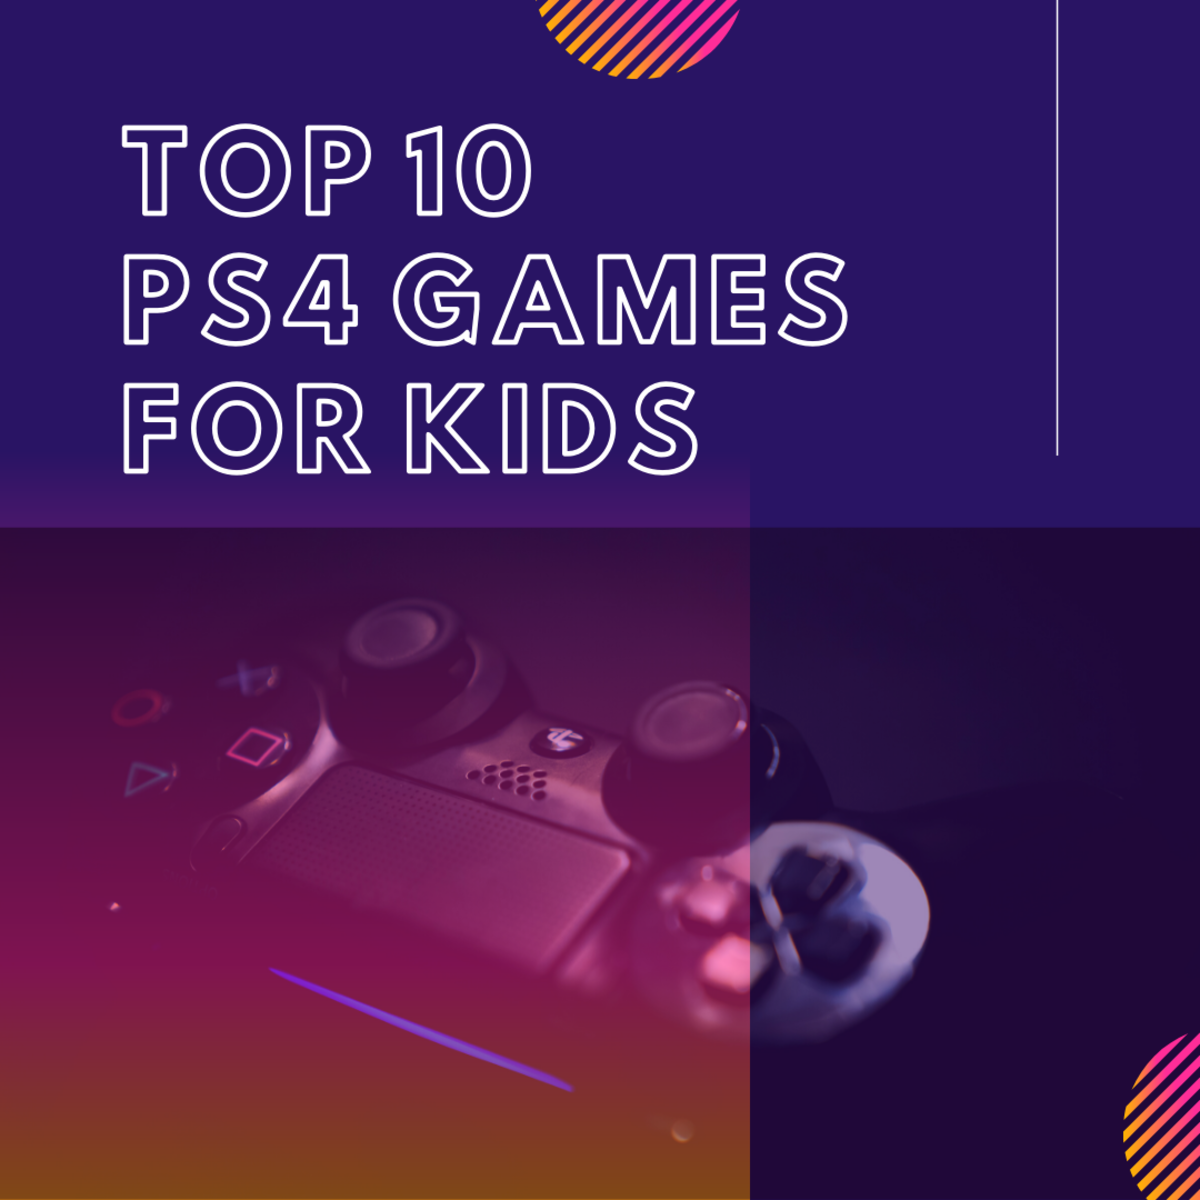 Read on for the best PS4 games for kids!